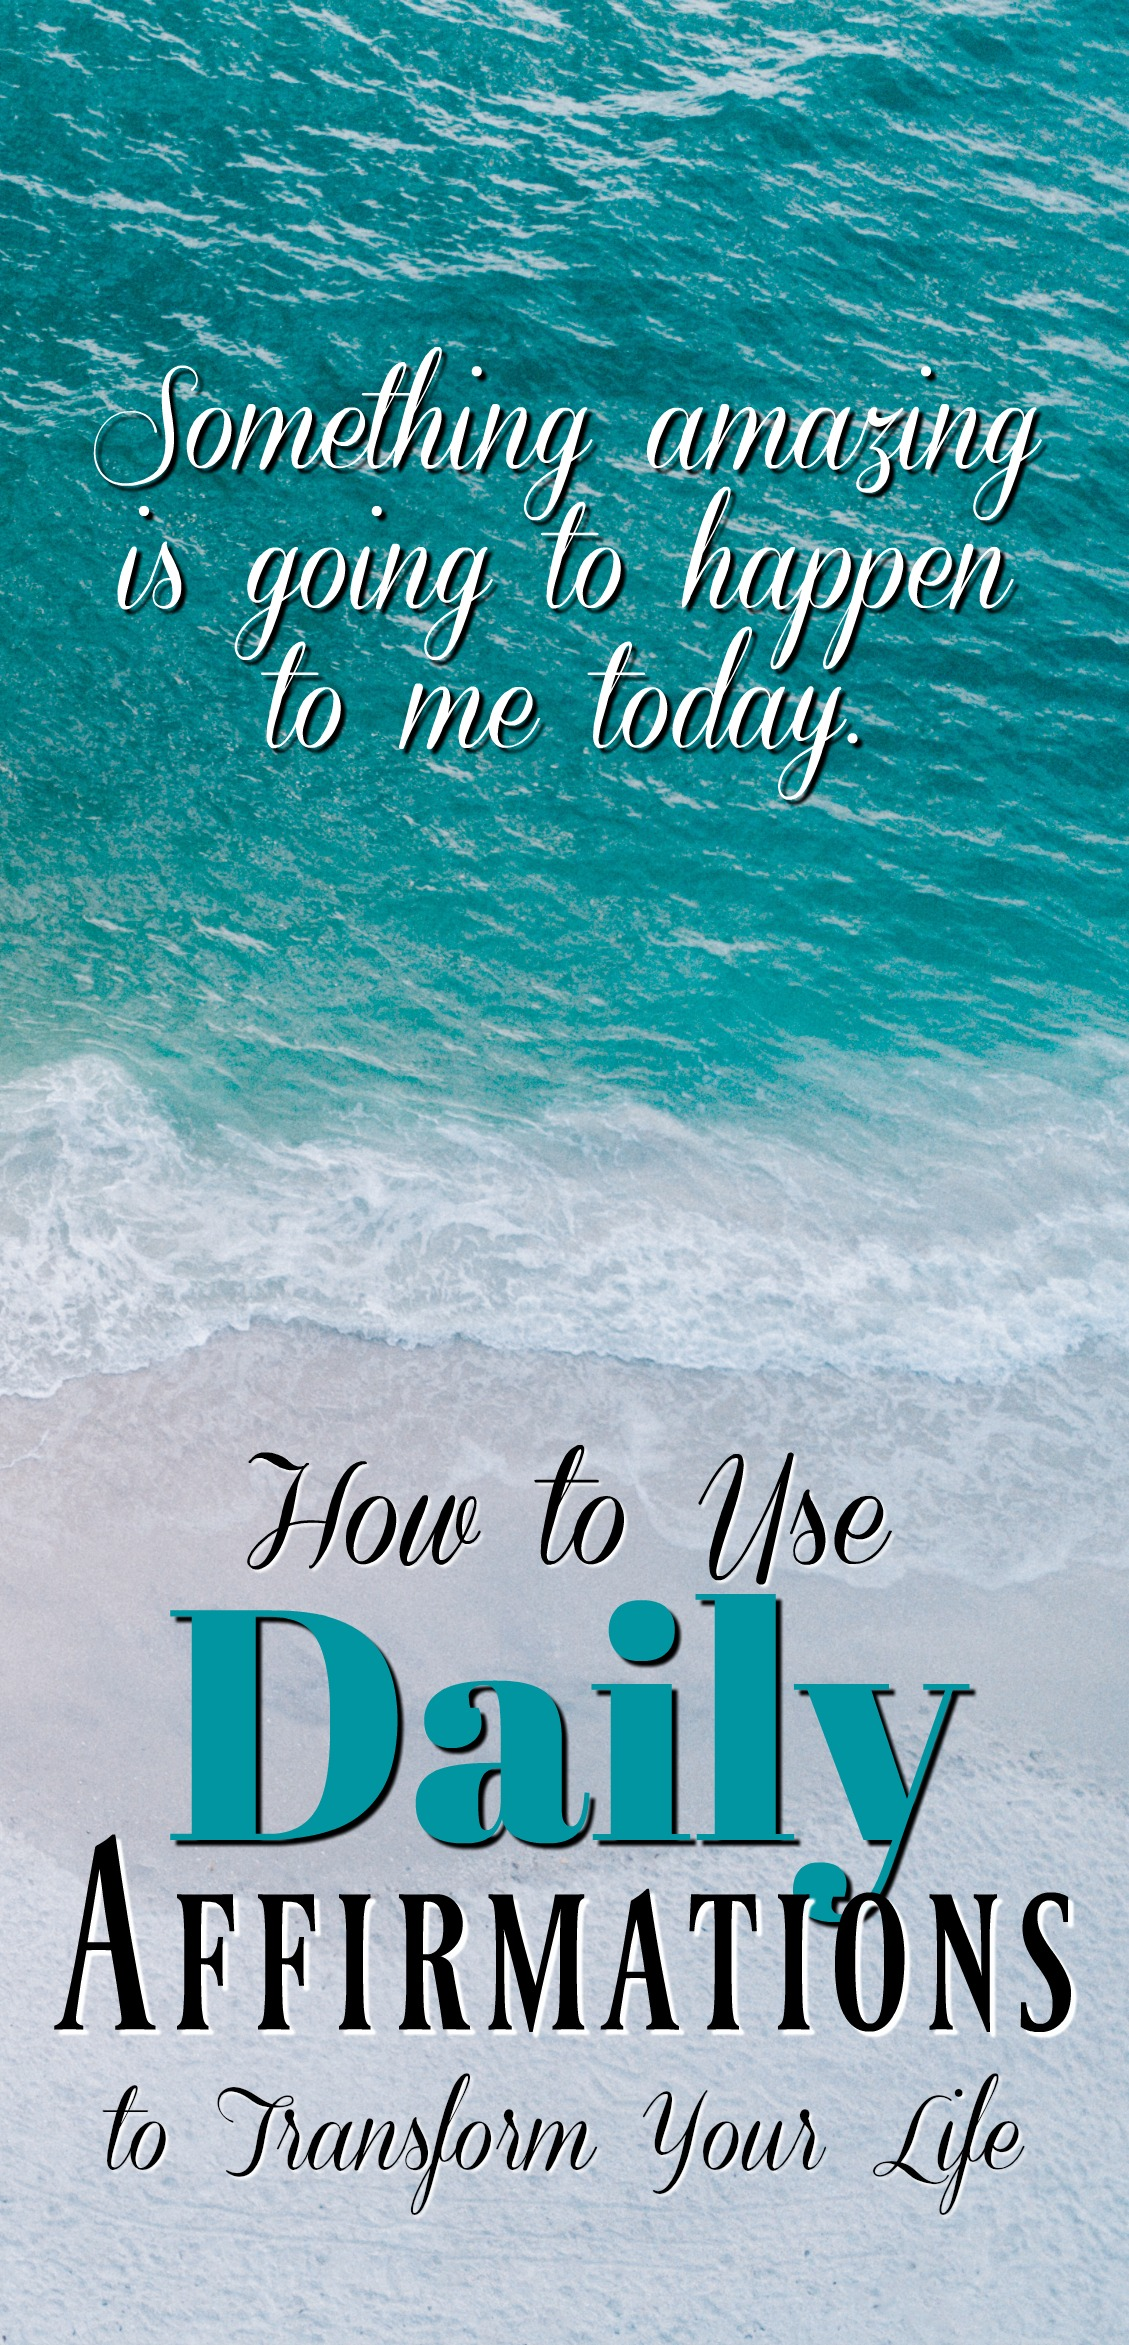 How To Use Daily Affirmations To Transform Your Life